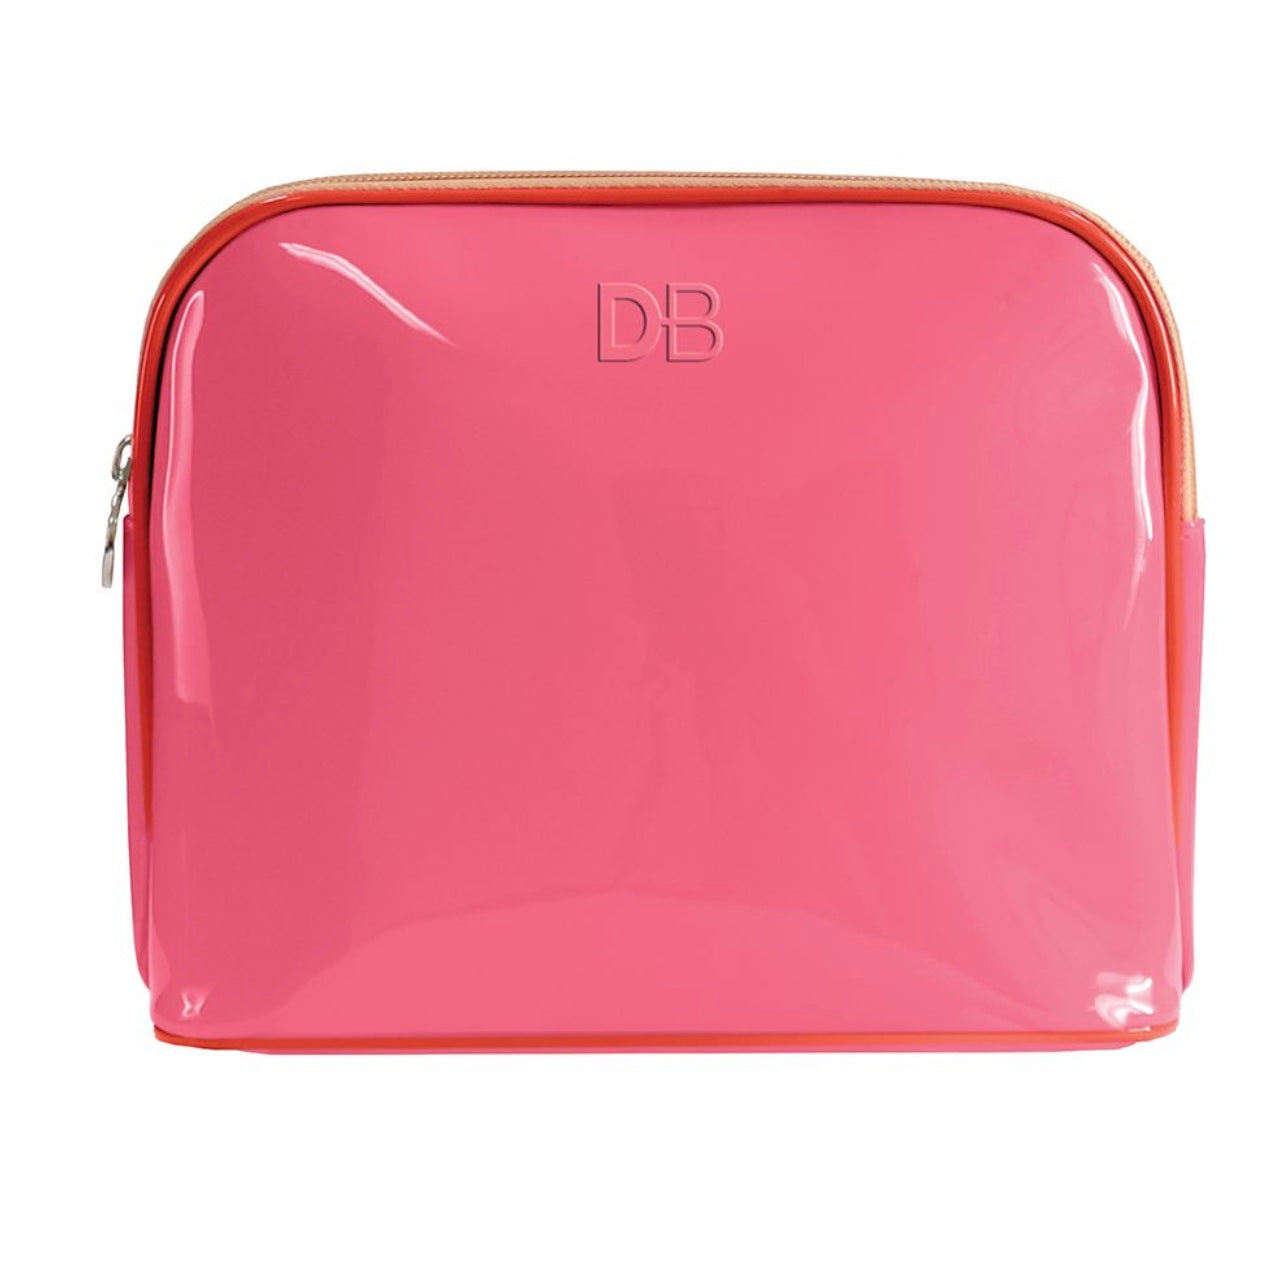 DB Cosmetics Luxe Stand Up Case -Flamingo Fling